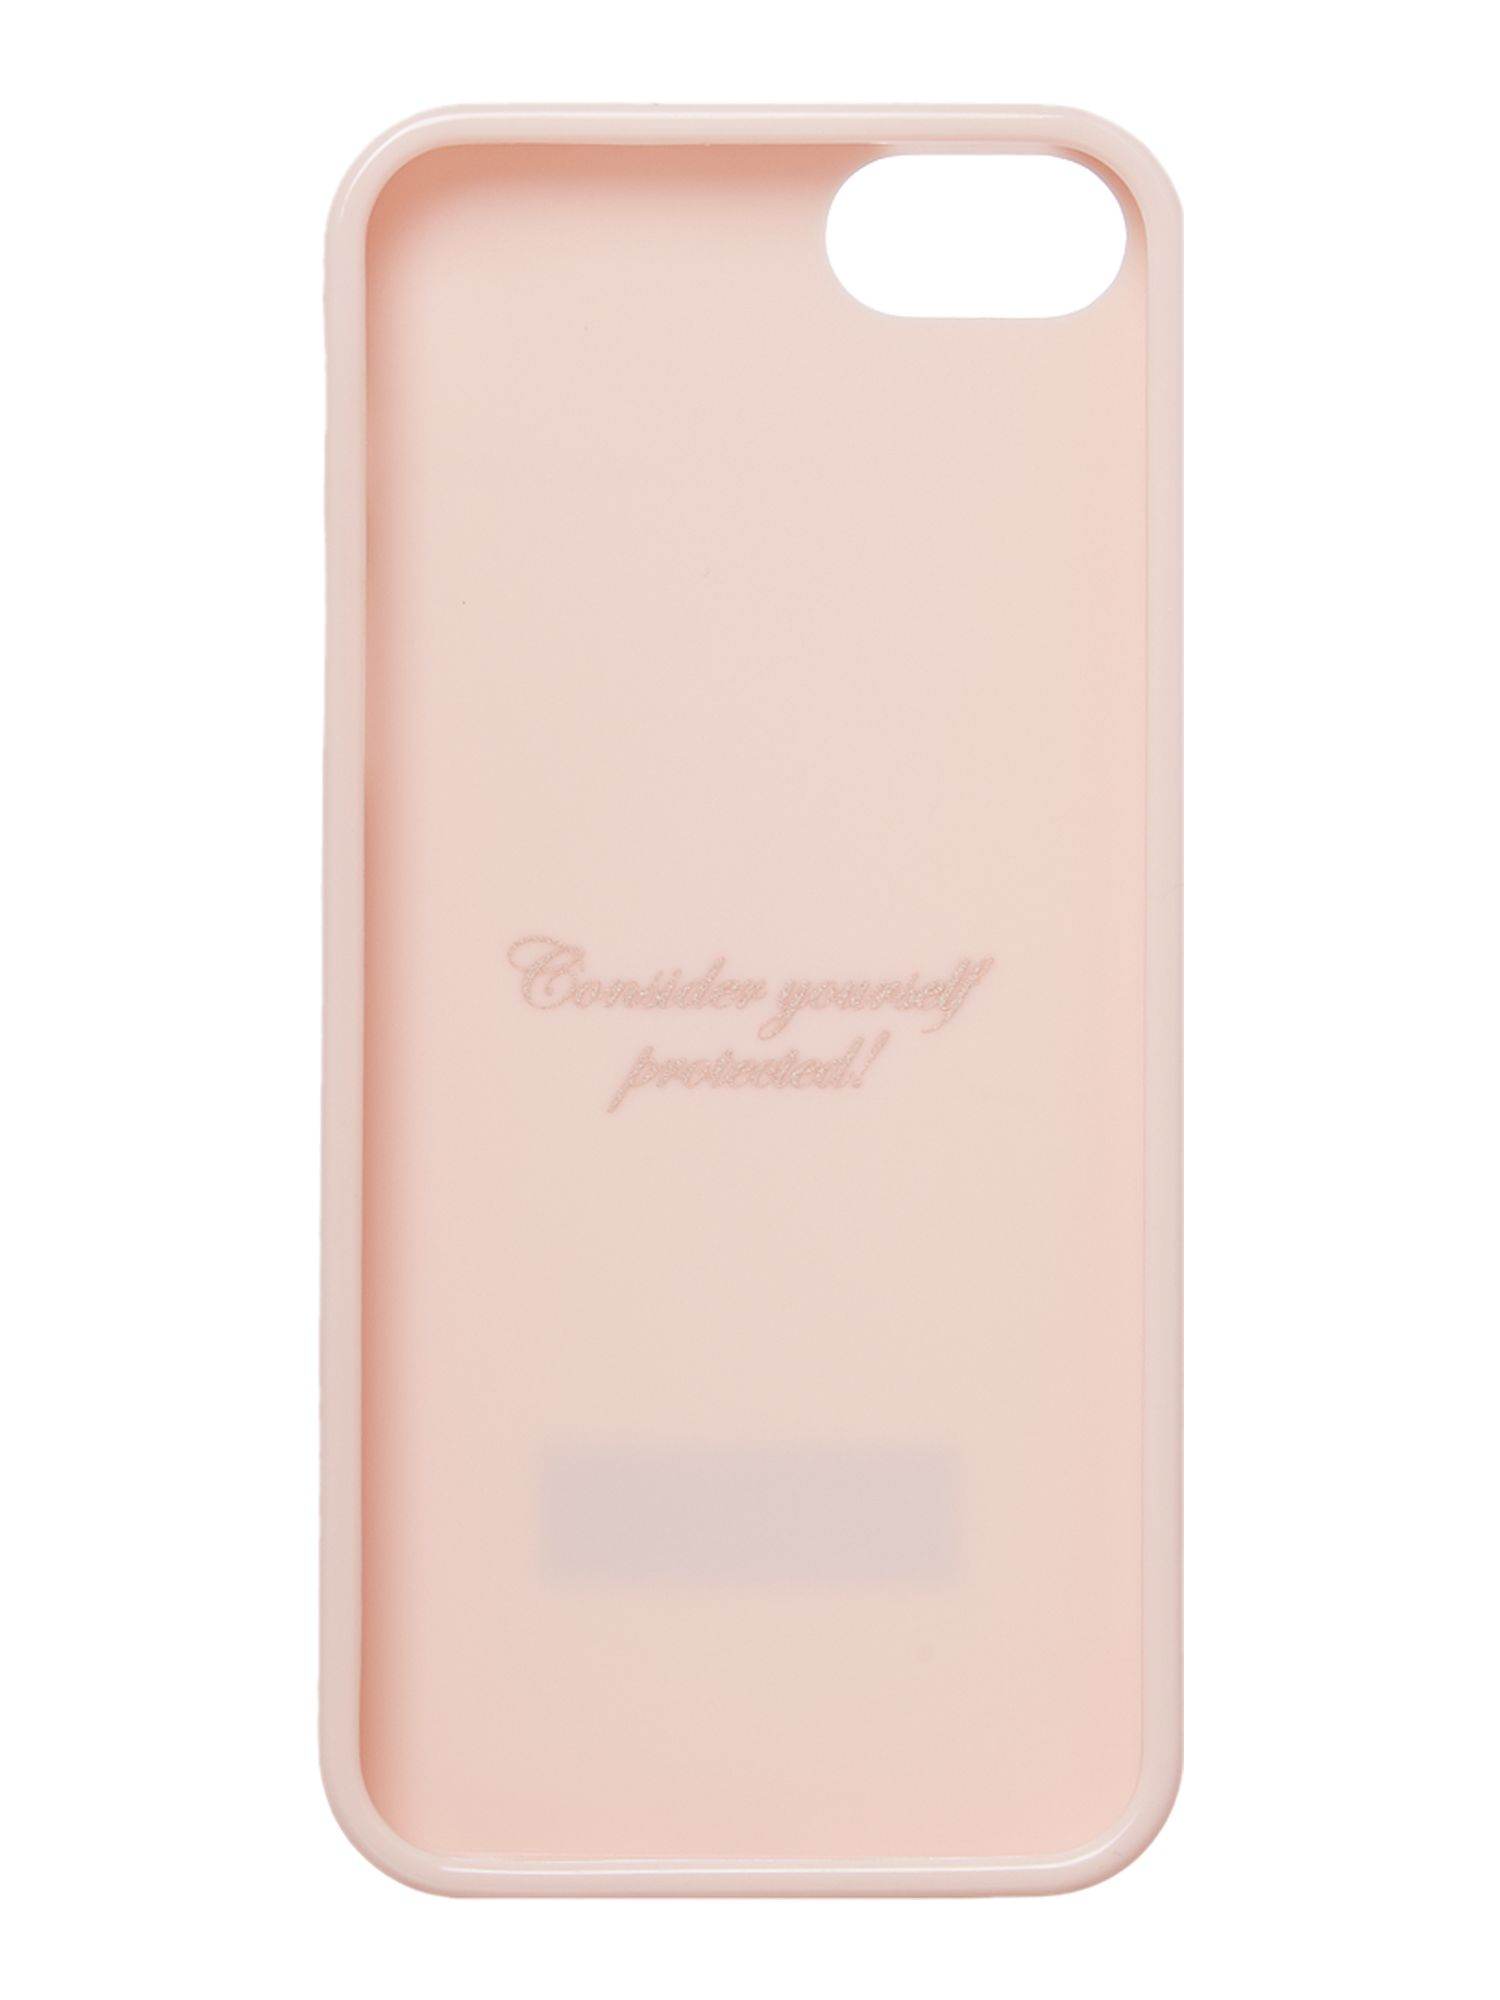 Jelly nude iPhone 5 case